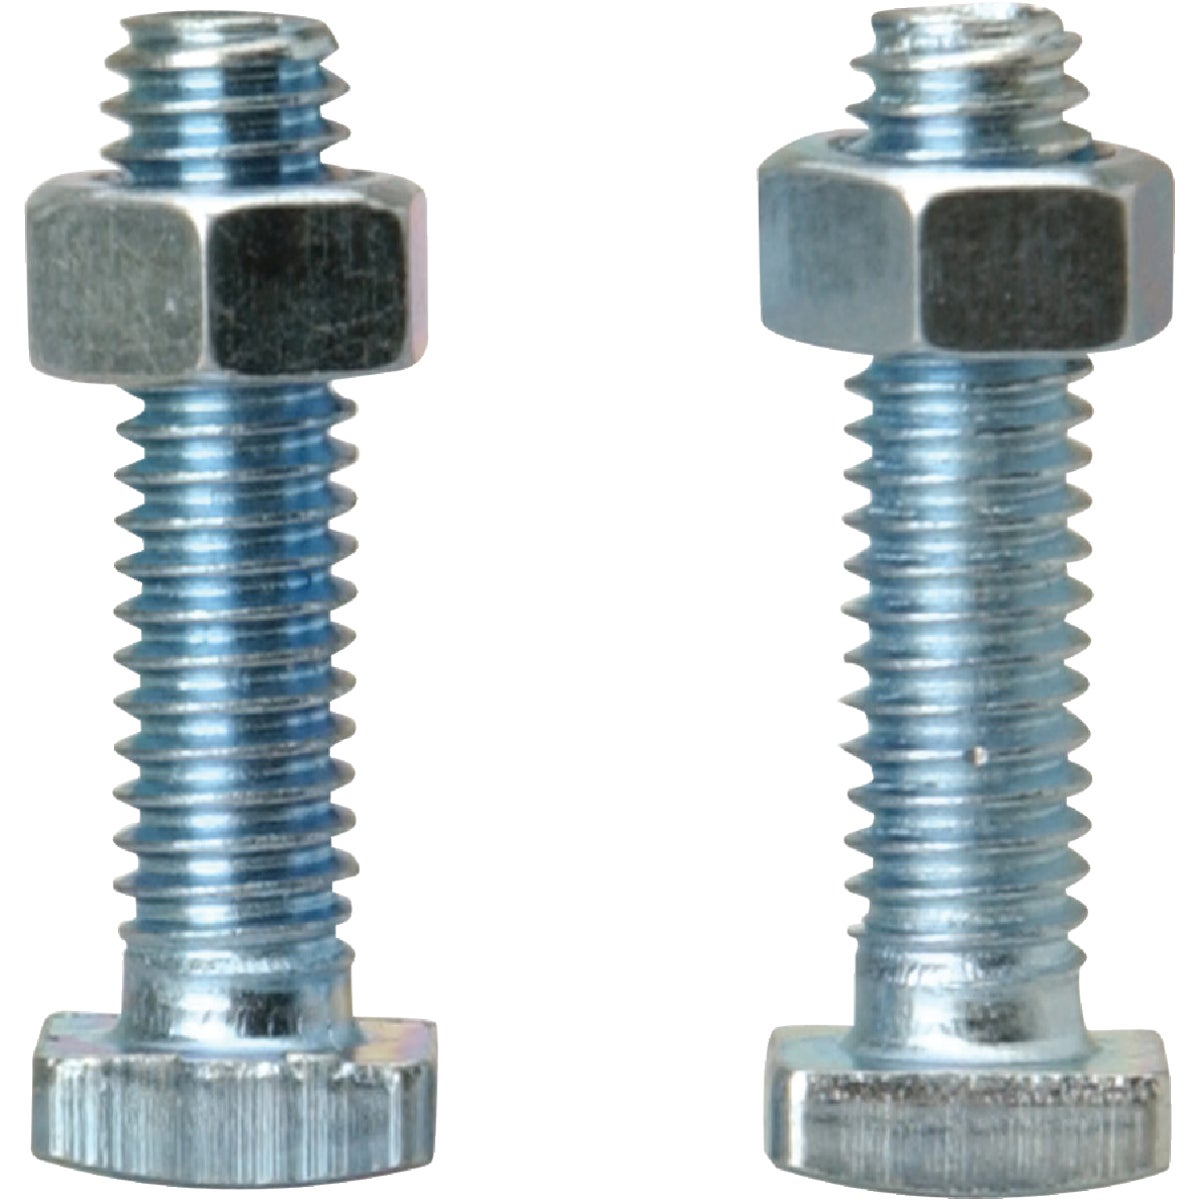 "5/16"" BATTERY BOLTS - 923-2 by Woods Wire Coleman"